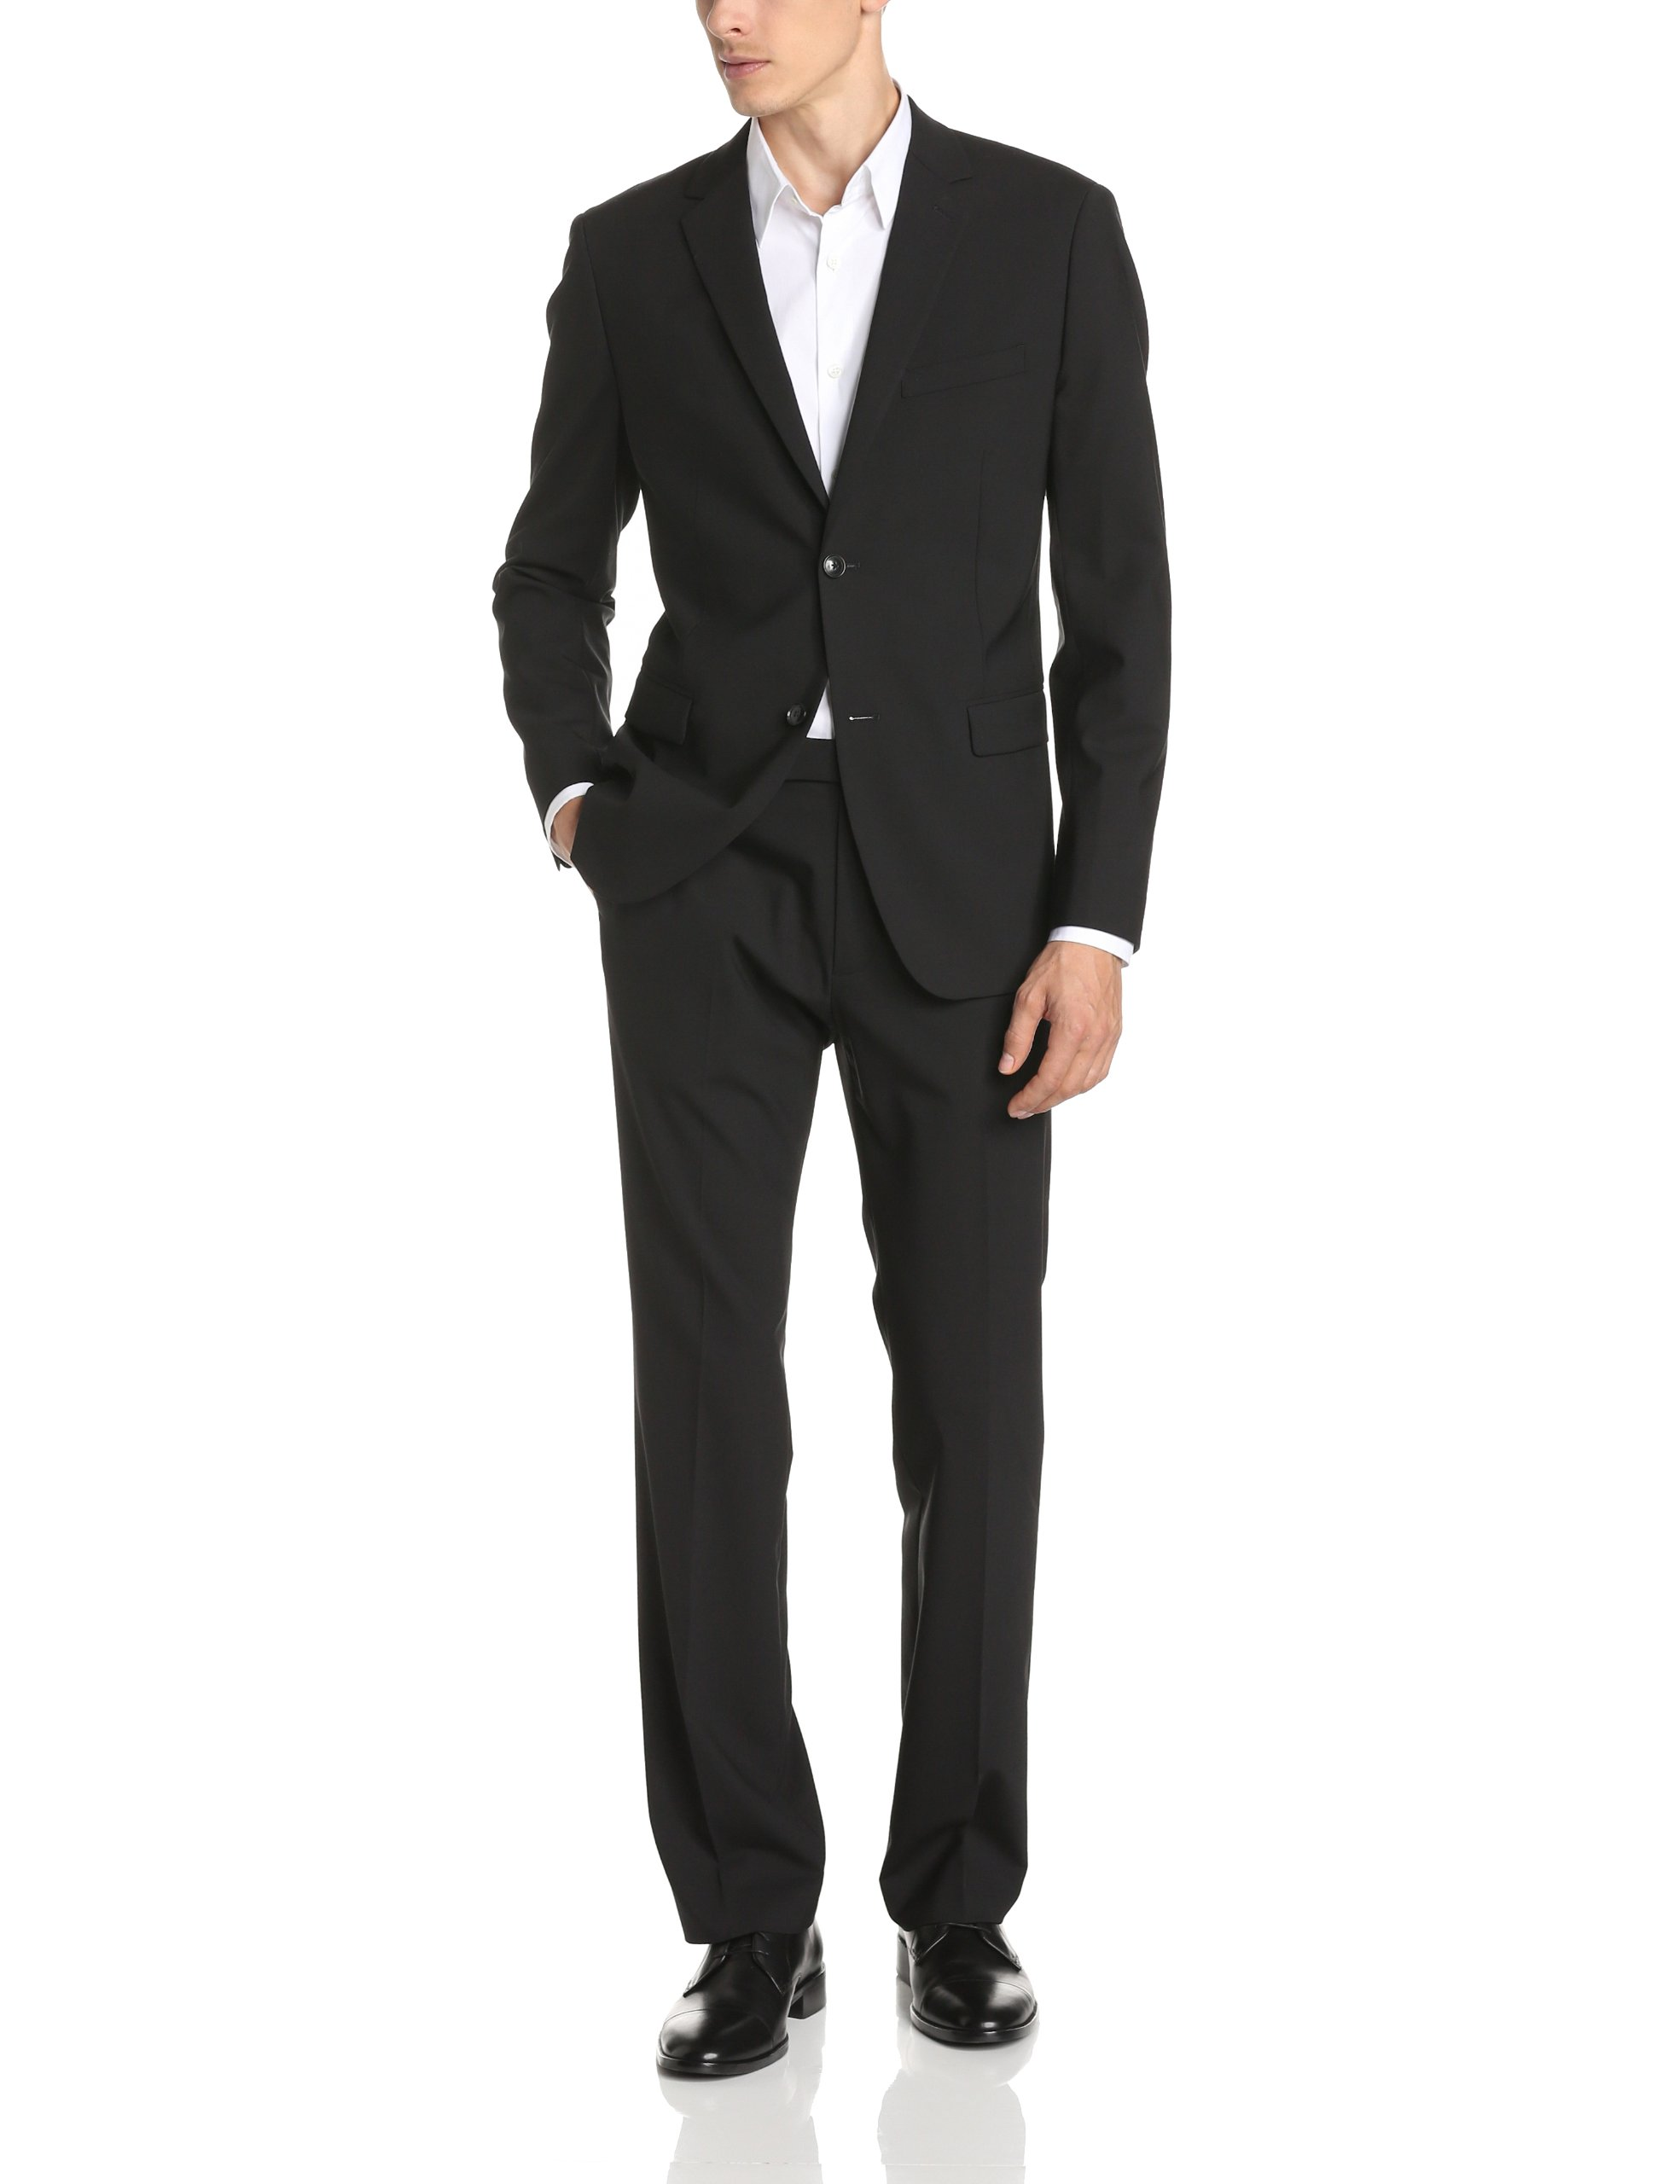 Theory Men's Wellar Half Canvas New Tailor Suit Jacket, Black, 44 by Theory